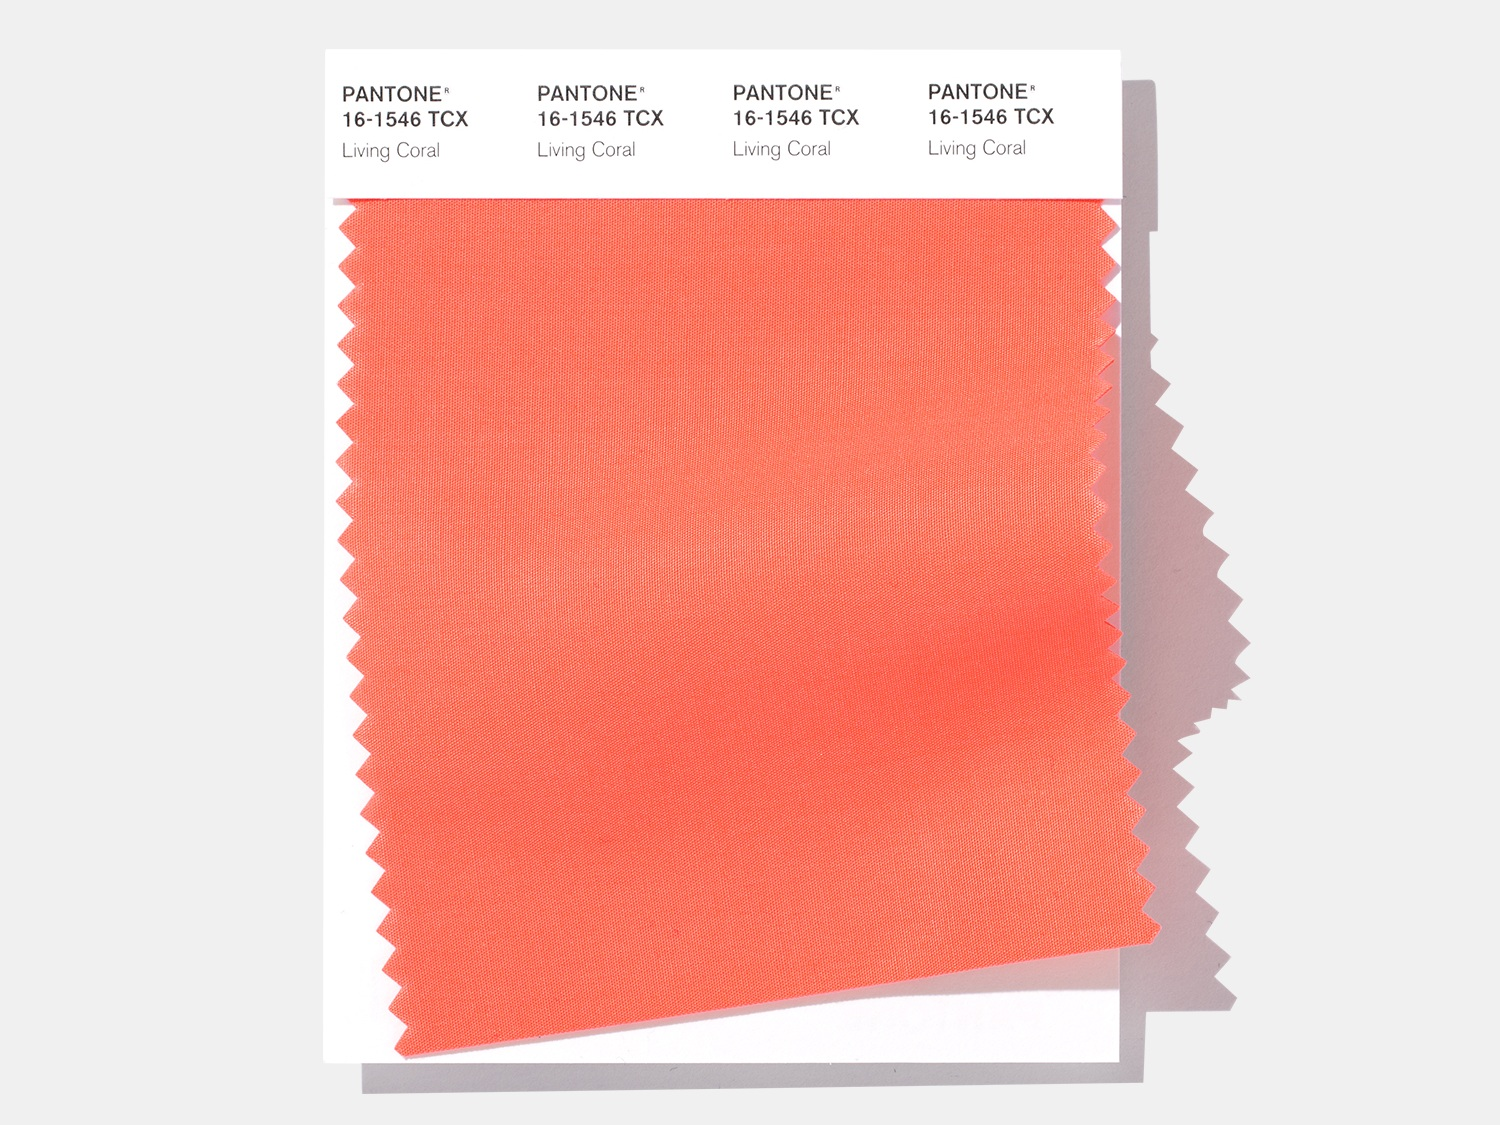 Pantone / Living Coral Cotton SMART Color Swatch Card